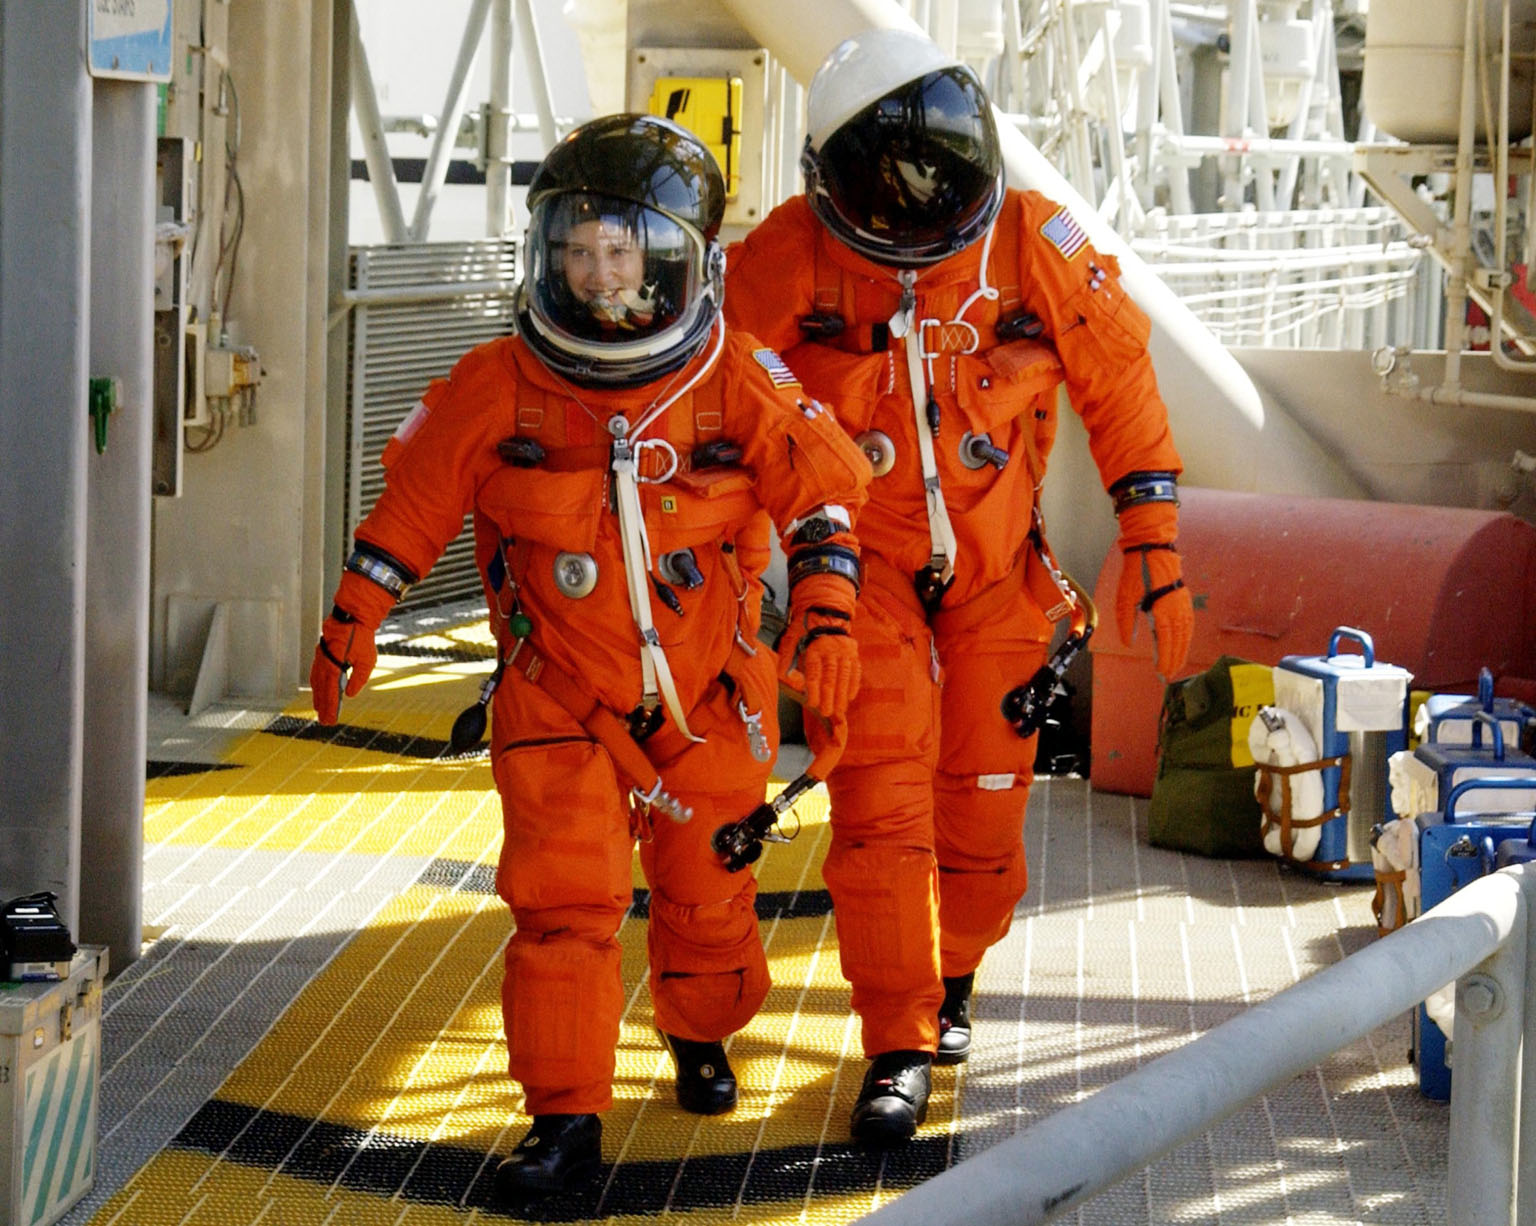 KENNEDY SPACE CENTER, FLA. - STS-112 Pilot Pamela Melroy (left) and Commander Jeffrey Ashby hurry toward the slidewire baskets on the 195-foot level of the Fixed Service Structure, Launch Pad 39B. They and the rest of the crew are practicing emergency egress from the pad during Terminal Countdown Demonstration Test activities. Mission STS-112 aboard Space Shuttle Atlantis is scheduled to launch no earlier than Oct. 2, between 2 and 6 p.m. EDT. STS-112 is the 15th assembly mission to the International Space Station. Atlantis will be carrying the S1 Integrated Truss Structure, the first starboard truss segment, to be attached to the central truss segment, S0, and the Crew and Equipment Translation Aid (CETA) Cart A. The CETA is the first of two human-powered carts that will ride along the ISS railway, providing mobile work platforms for future spacewalking astronauts.